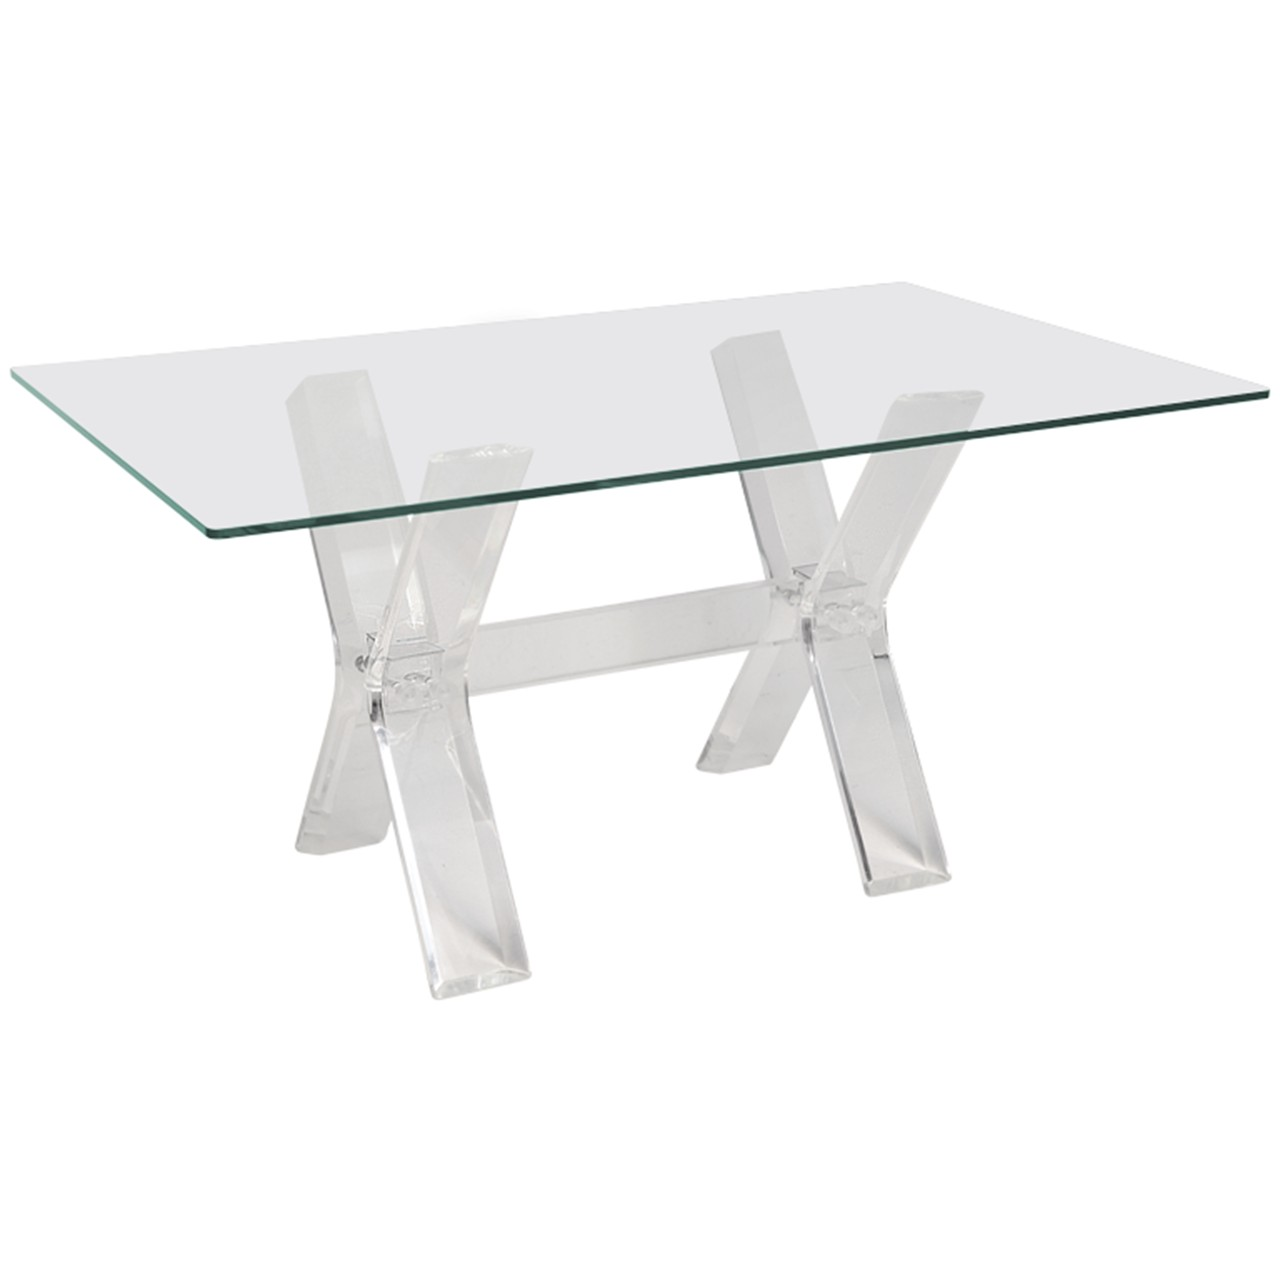 Lucite X Base Mirrored Mirror Dining Table Or Desk Base